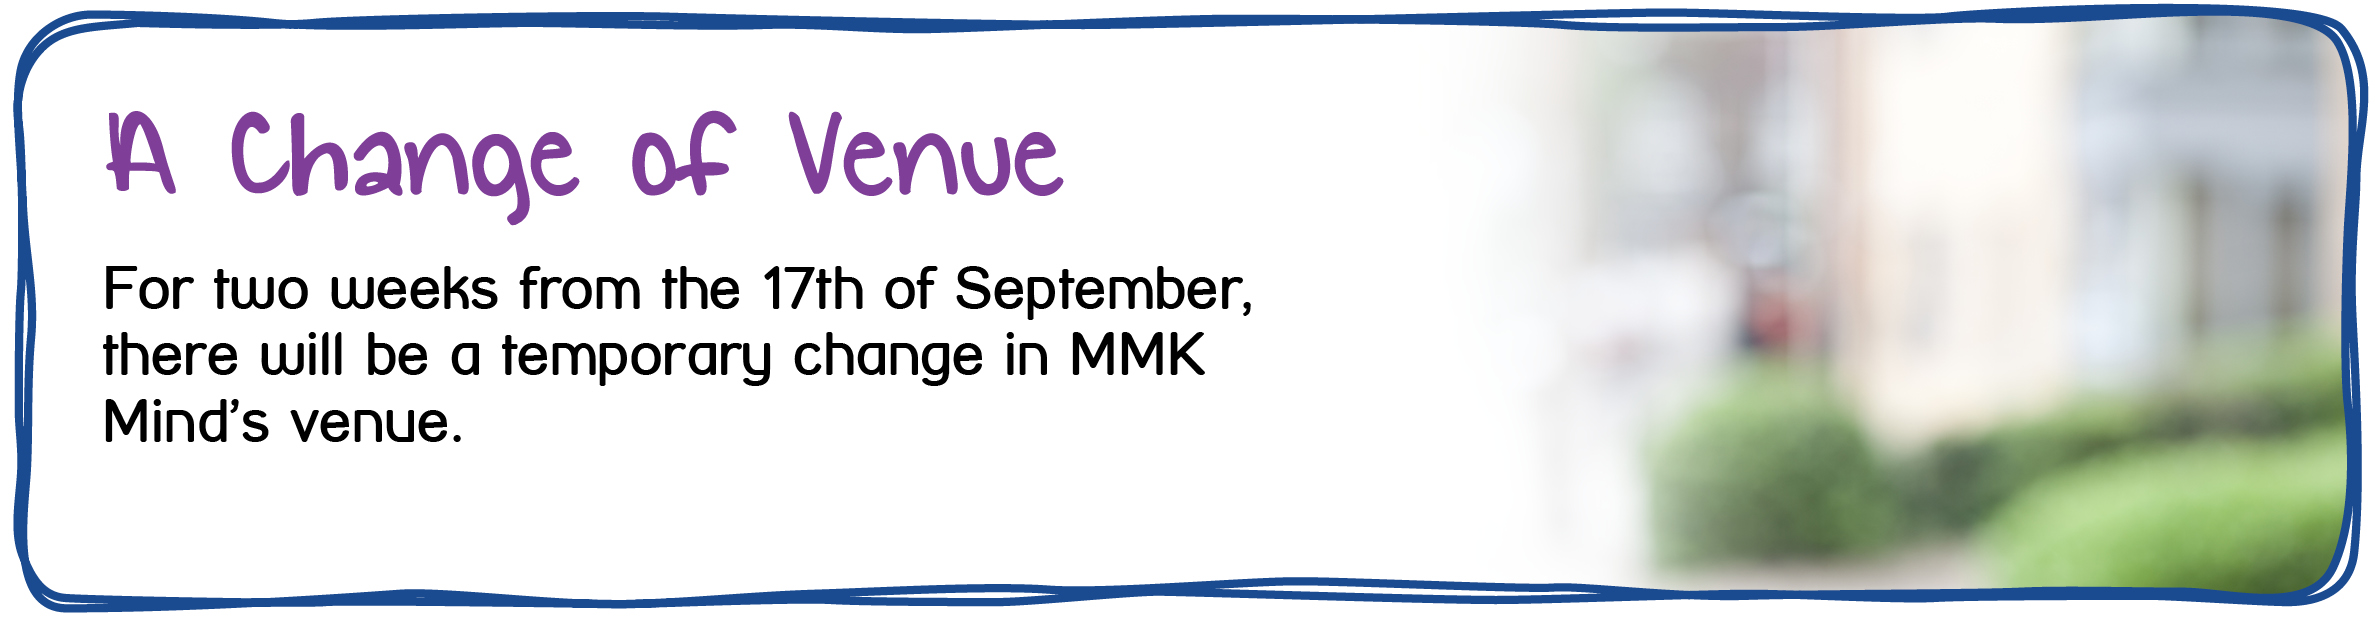 Maidstone and Mid-Kent Mind. A Change in Venue. For two weeks from the 17th of September, there will be a change in venue whilst construction works are completed. This change breaks down to the following: The following services will run from the following locations during september: Traditional Social Group ,Thursday 13th Sept; Hall 2, MCSC, Marsham Street, ME14 1HH Cooking Group, Tuesday 18th; UR Church Arts & Crafts , Wednesday 19th; UR Church Traditional Social Group, Thursday 20th; UR Church Cooking Group, Tuesday 25th; UR Church Arts & Crafts, Wednesday 26th; UR Church Traditional Social Group, Thursday 27th; UR Church